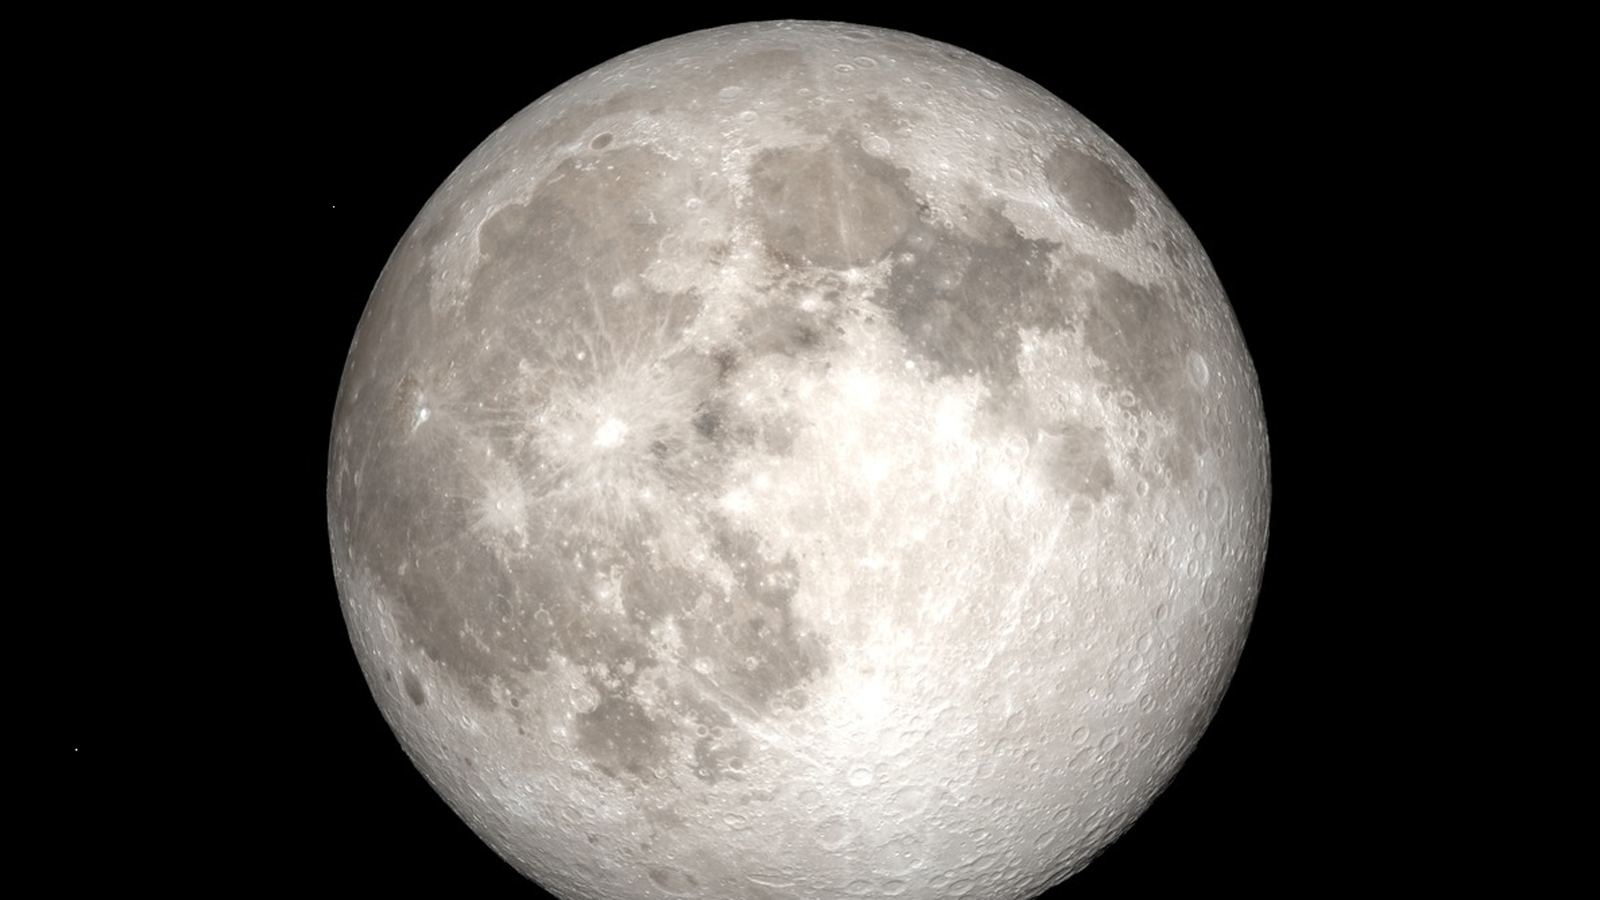 Worm supermoon 2020: Catch it while you can!